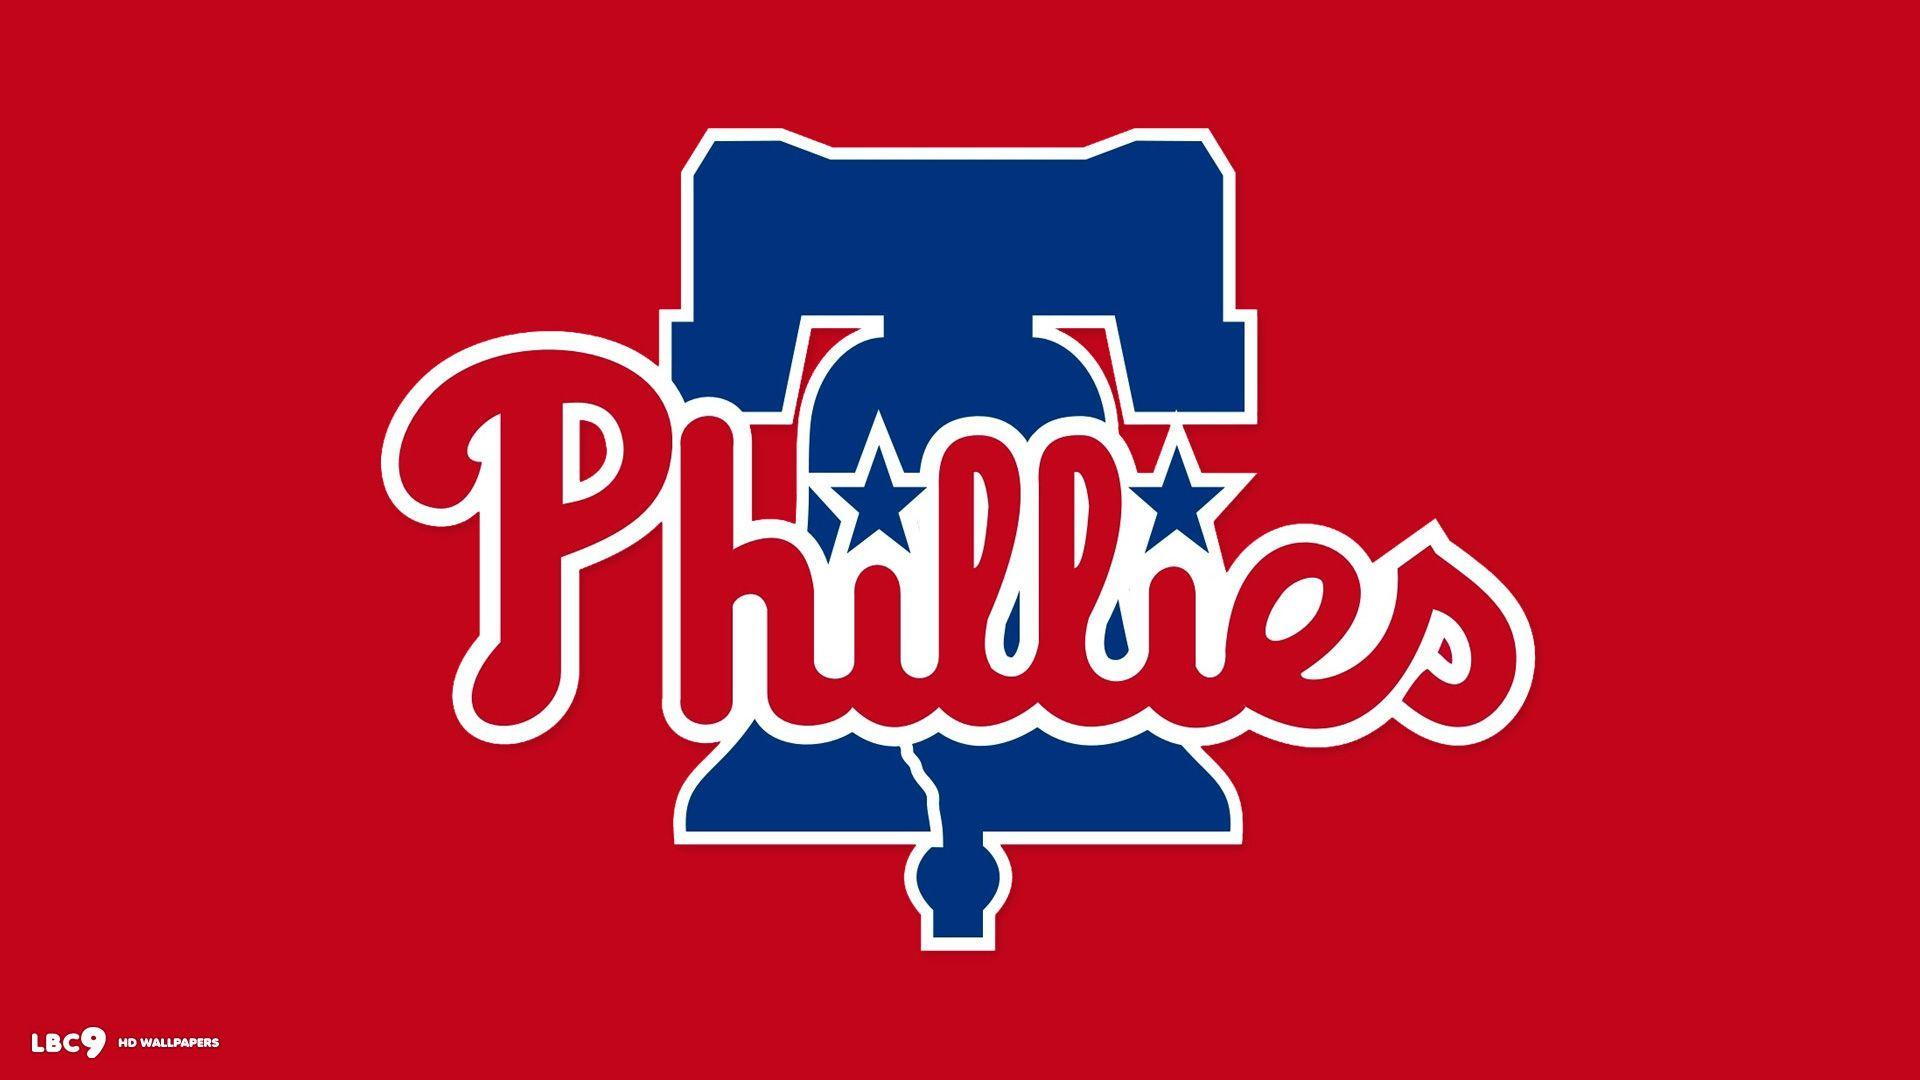 Philadelphia Phillies Wallpapers Hd 26102 Images | wallgraf.